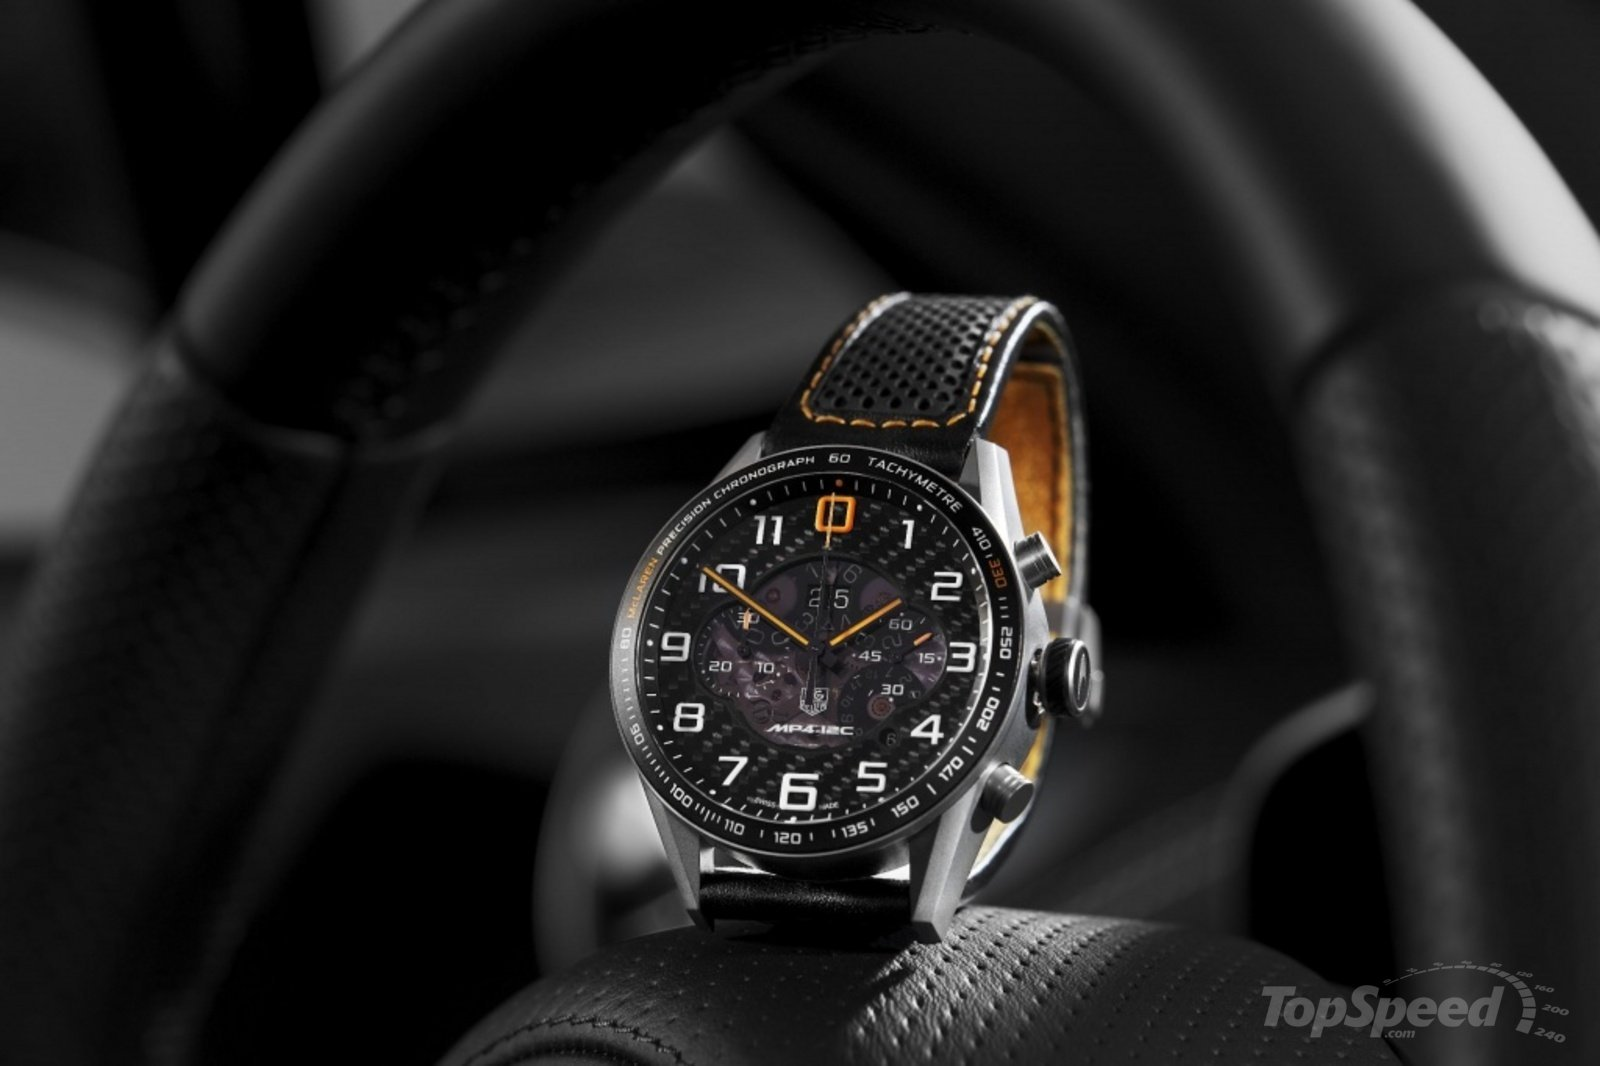 Tag Heuer Carrera MP4-12C Chronograph News